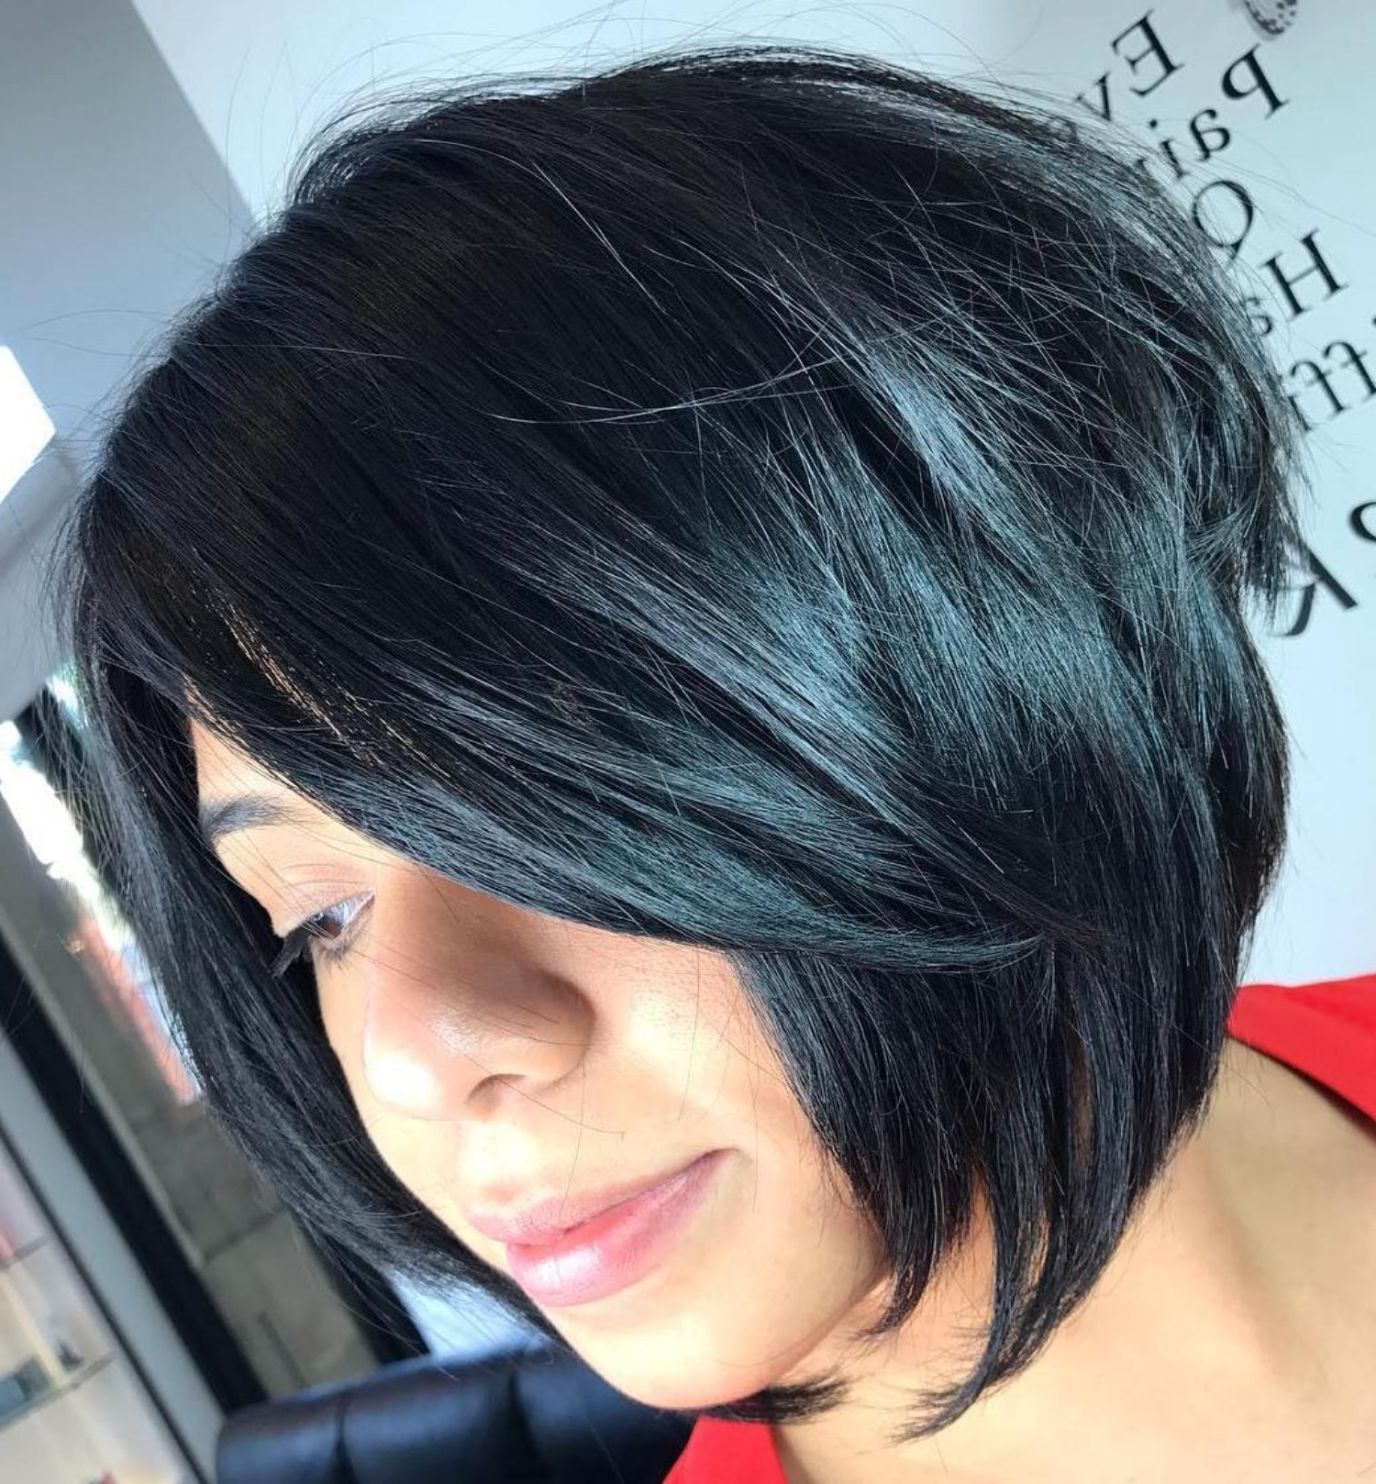 Hair Throughout Famous Jet Black Chin Length Sleek Bob Hairstyles (View 3 of 20)